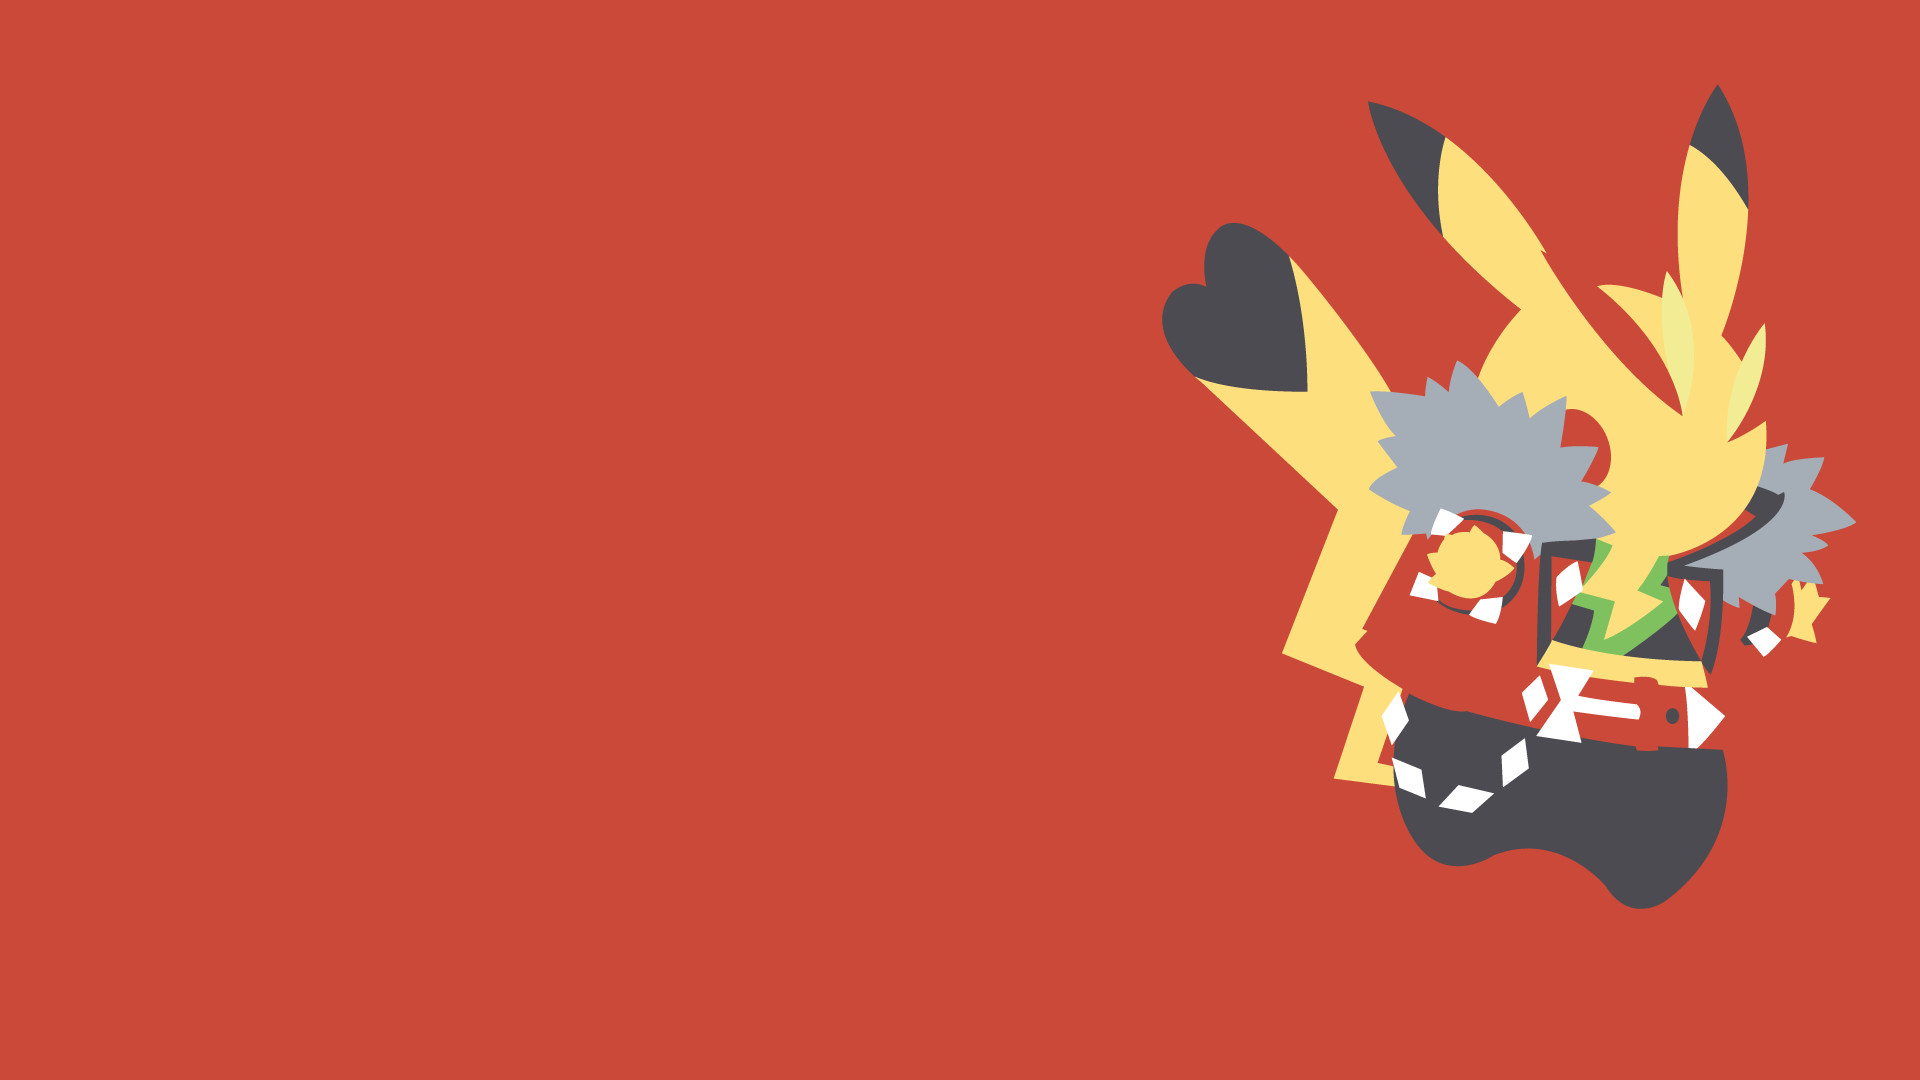 Res: 1920x1080, Pikachu Rock Star by LimeCatMastr